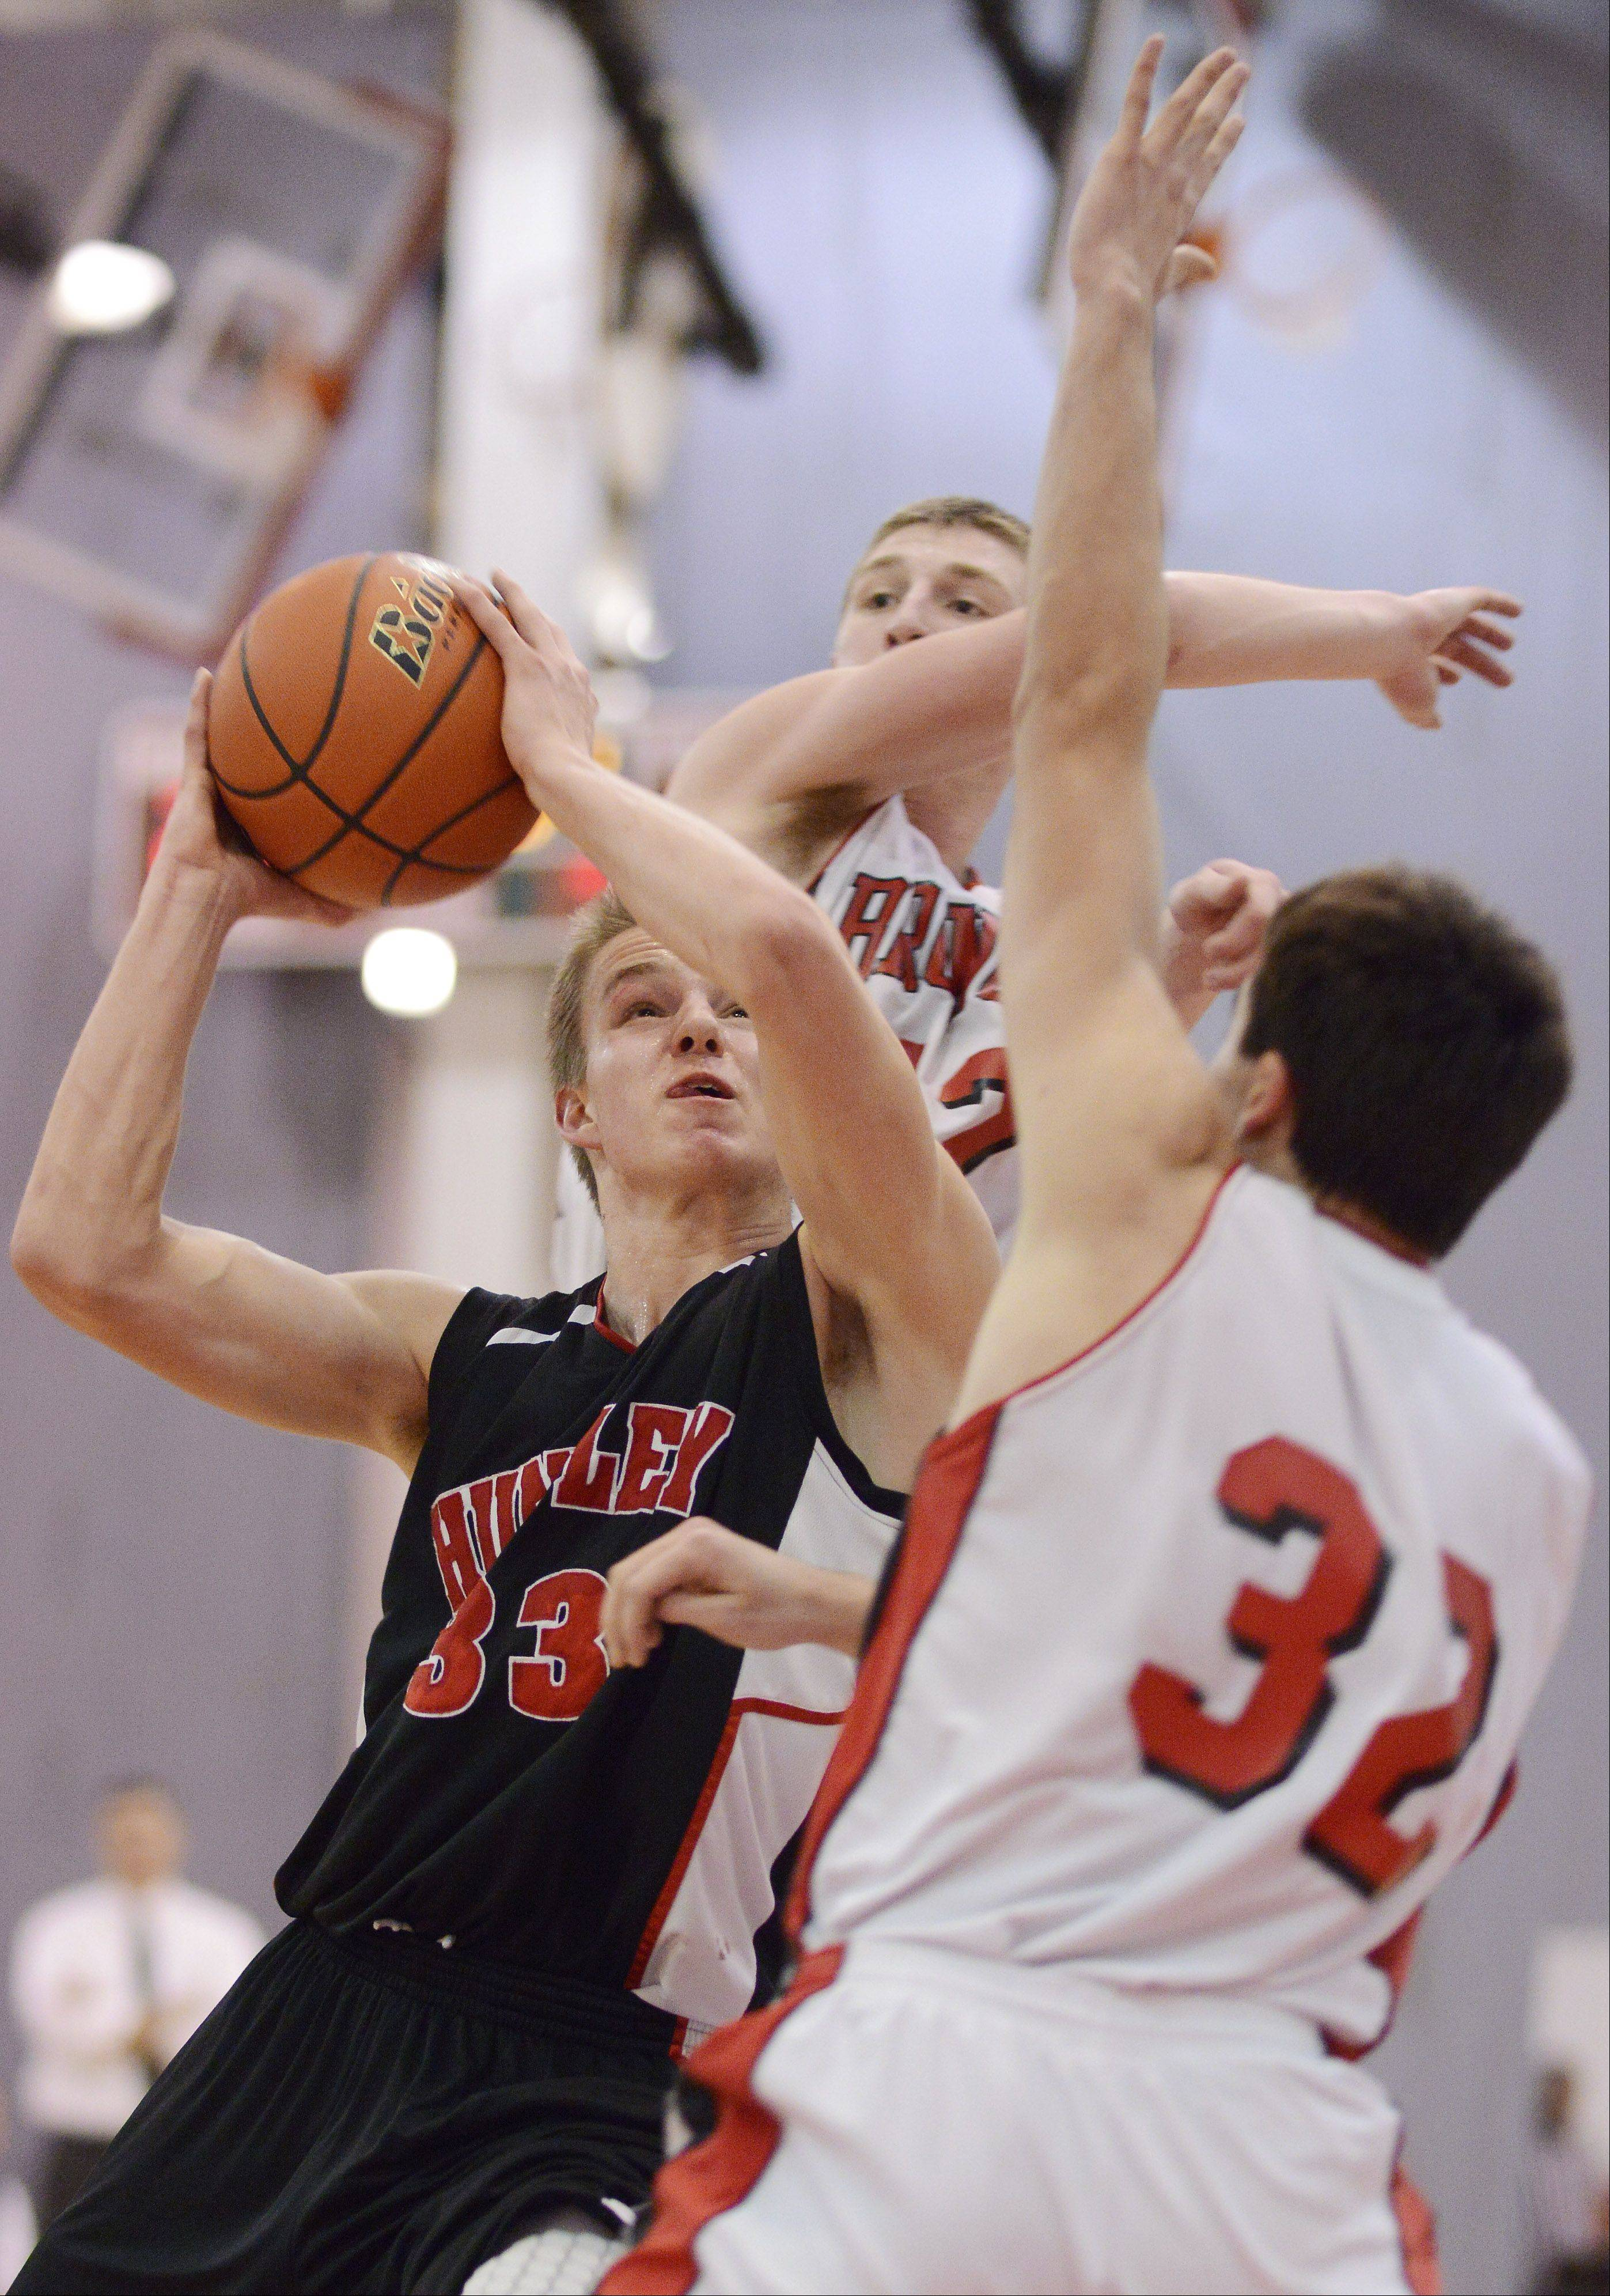 Huntley's Zach Gorney attempts a shot against the defense of Barrington's Austin Madrzyk, front, and Robby Vollman during Tuesday's game.